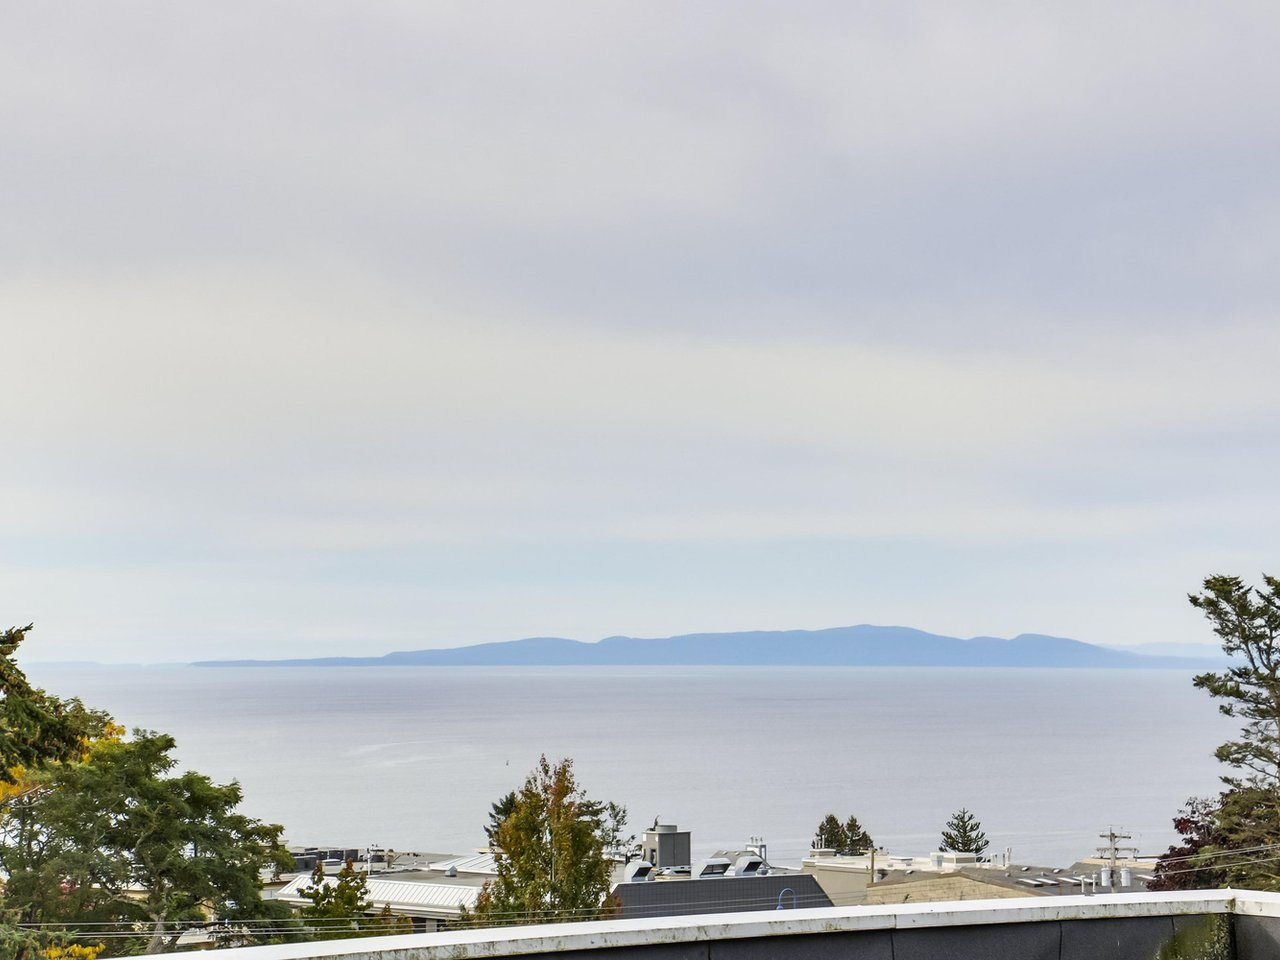 This charming top floor ocean view condo features a huge balcony to take in all of the sunsets and action at the highly sought after Five Corners location. Steps to schools, transit, shopping. restaurants, churches and a 10 minute walk to the beach. One bedroom and large den with big closets in both rooms. Lots of storage with huge pantry and in-suite laundry. Well managed peaceful and quiet building with roof top patio and rec room. Bring your ideas for upgrading as this is a great opportunity to own in sunny White Rock. There are no rentals, no pets, no Age restrictions and one secured parking stall. Call your Realtor to set up a private showing.